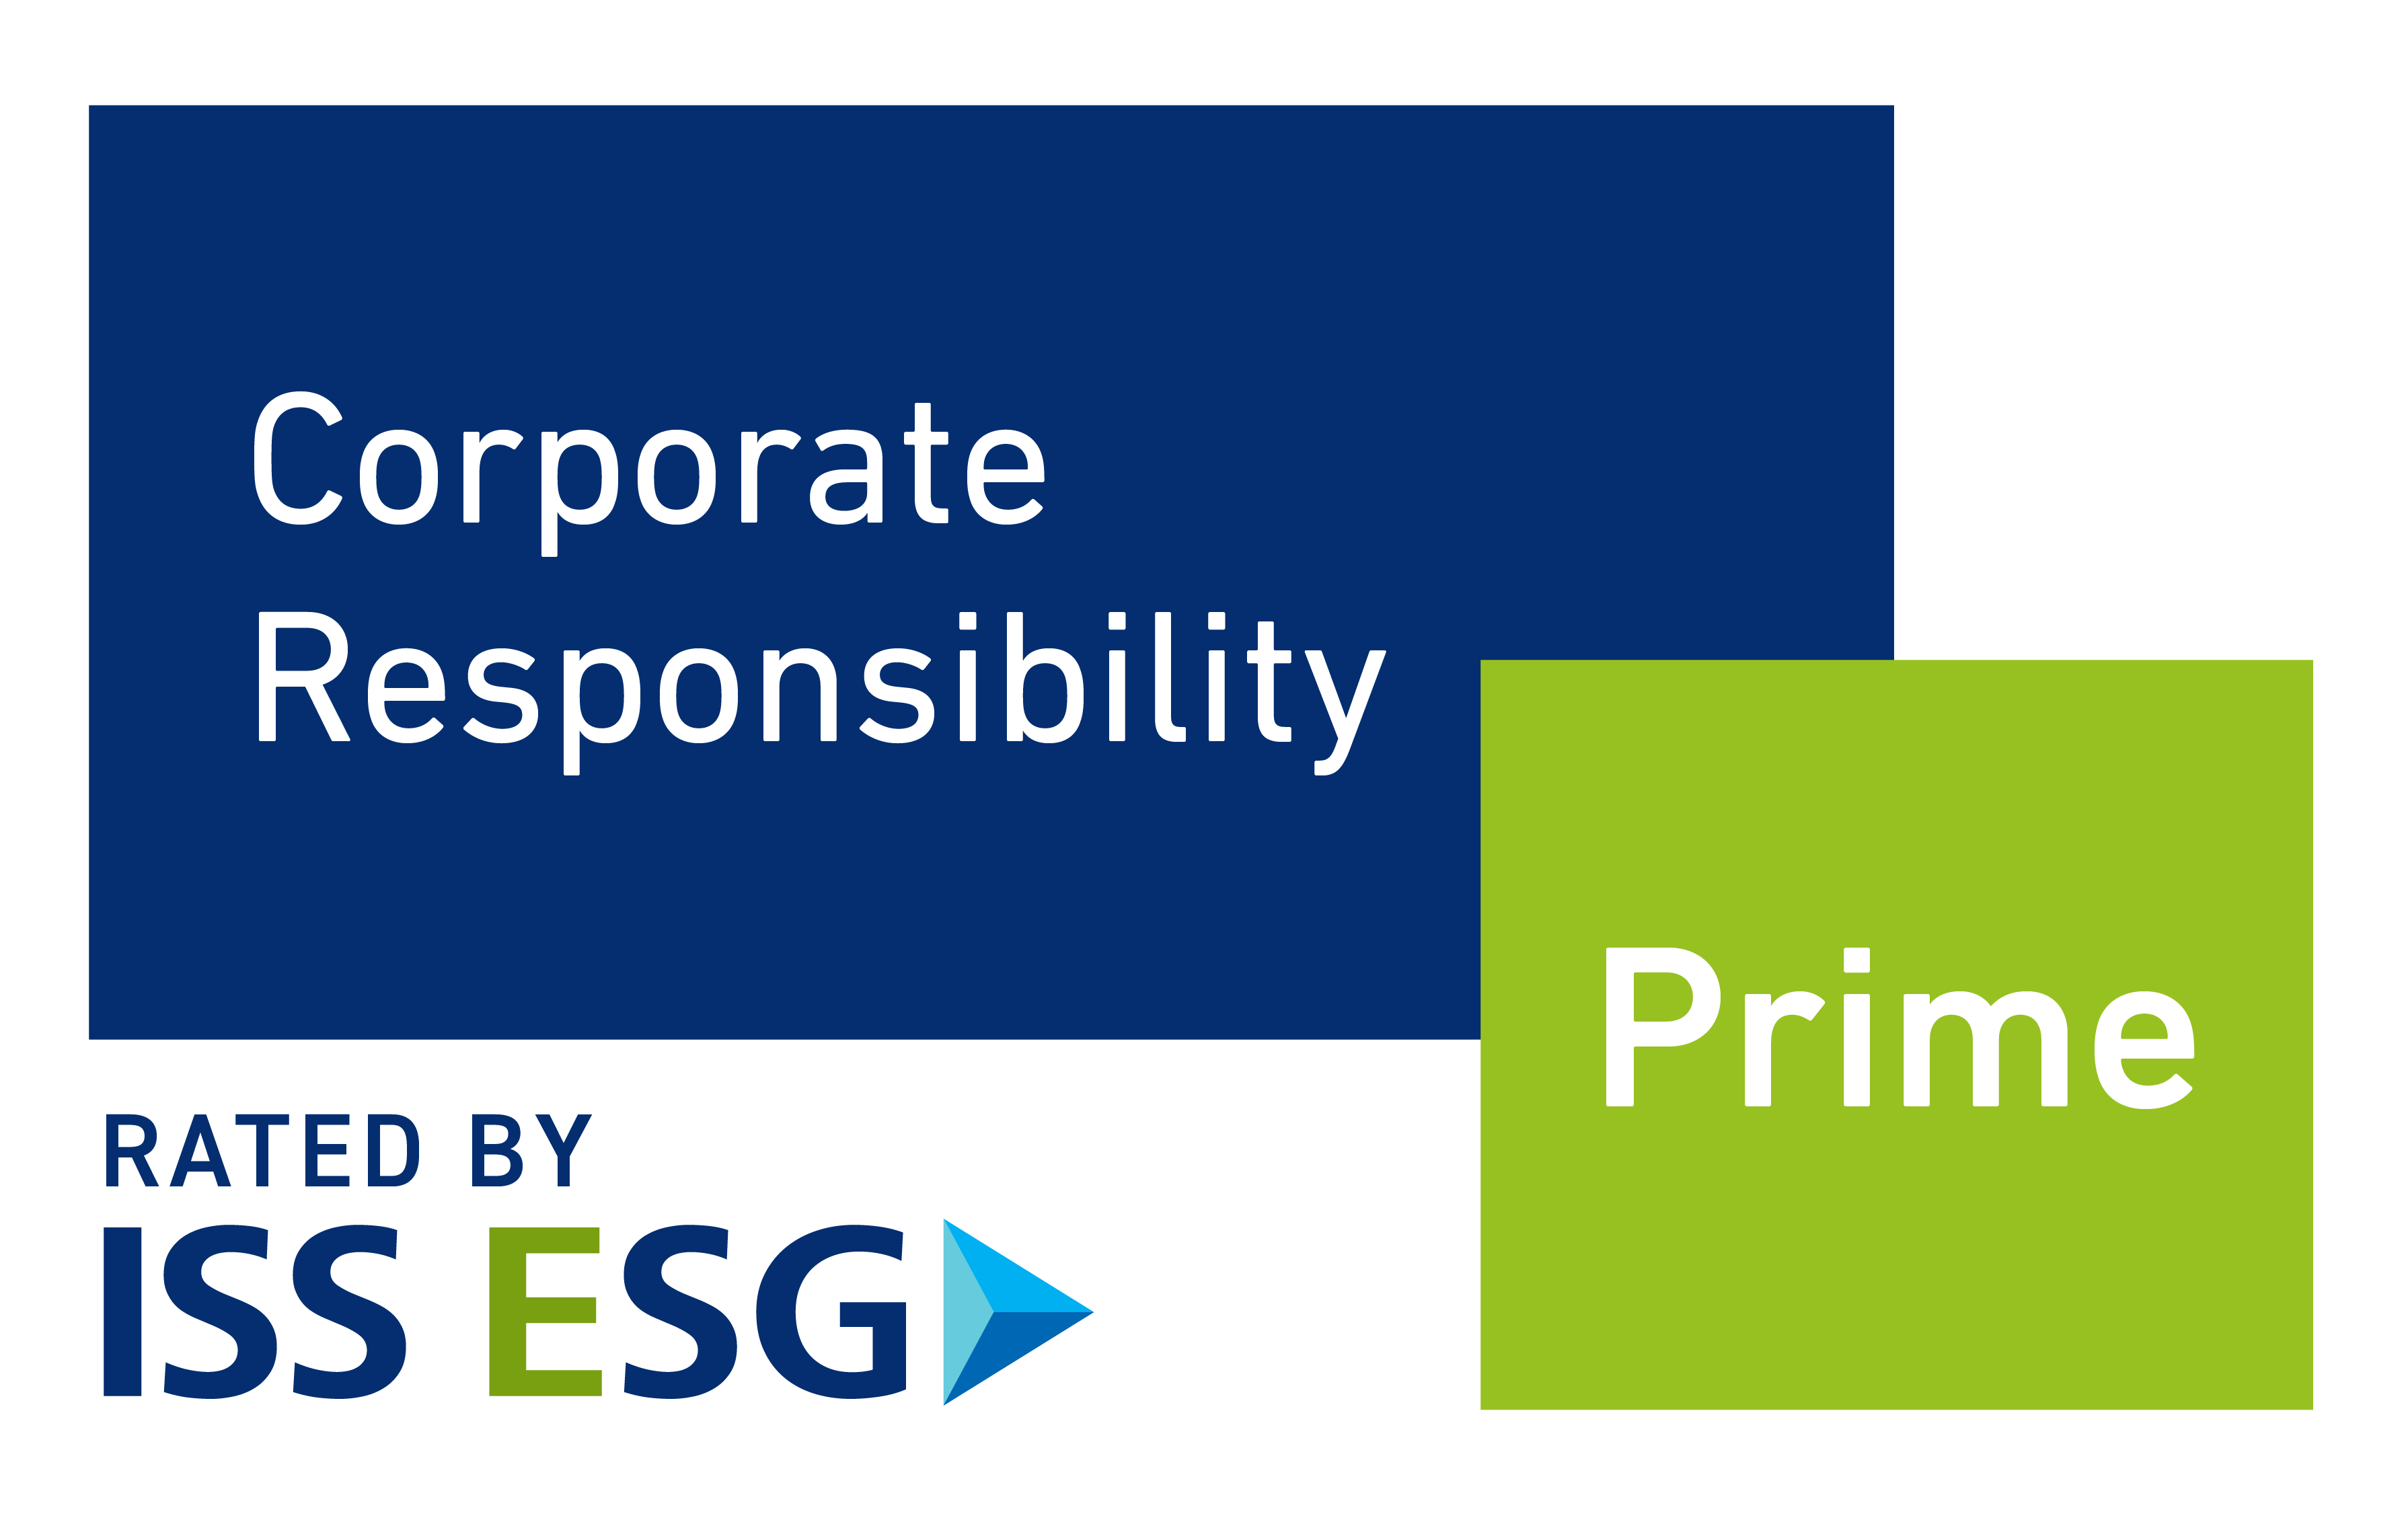 Prime Label - Corporate Responsiblity